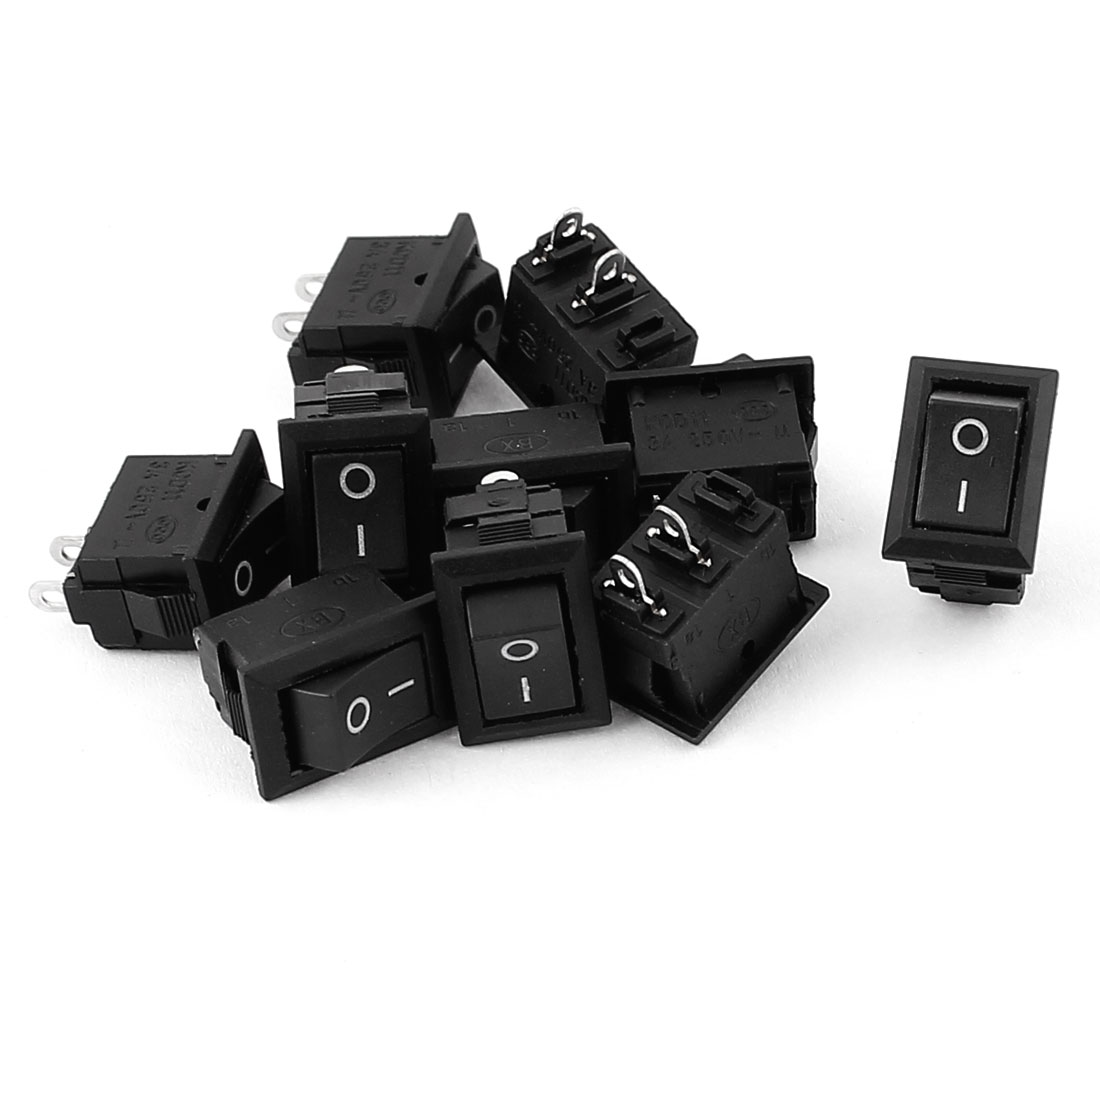 10 Pcs AC 250V 3A I/O 2 Position 2 Terminals SPST Latching Boat Rocker Switch Black